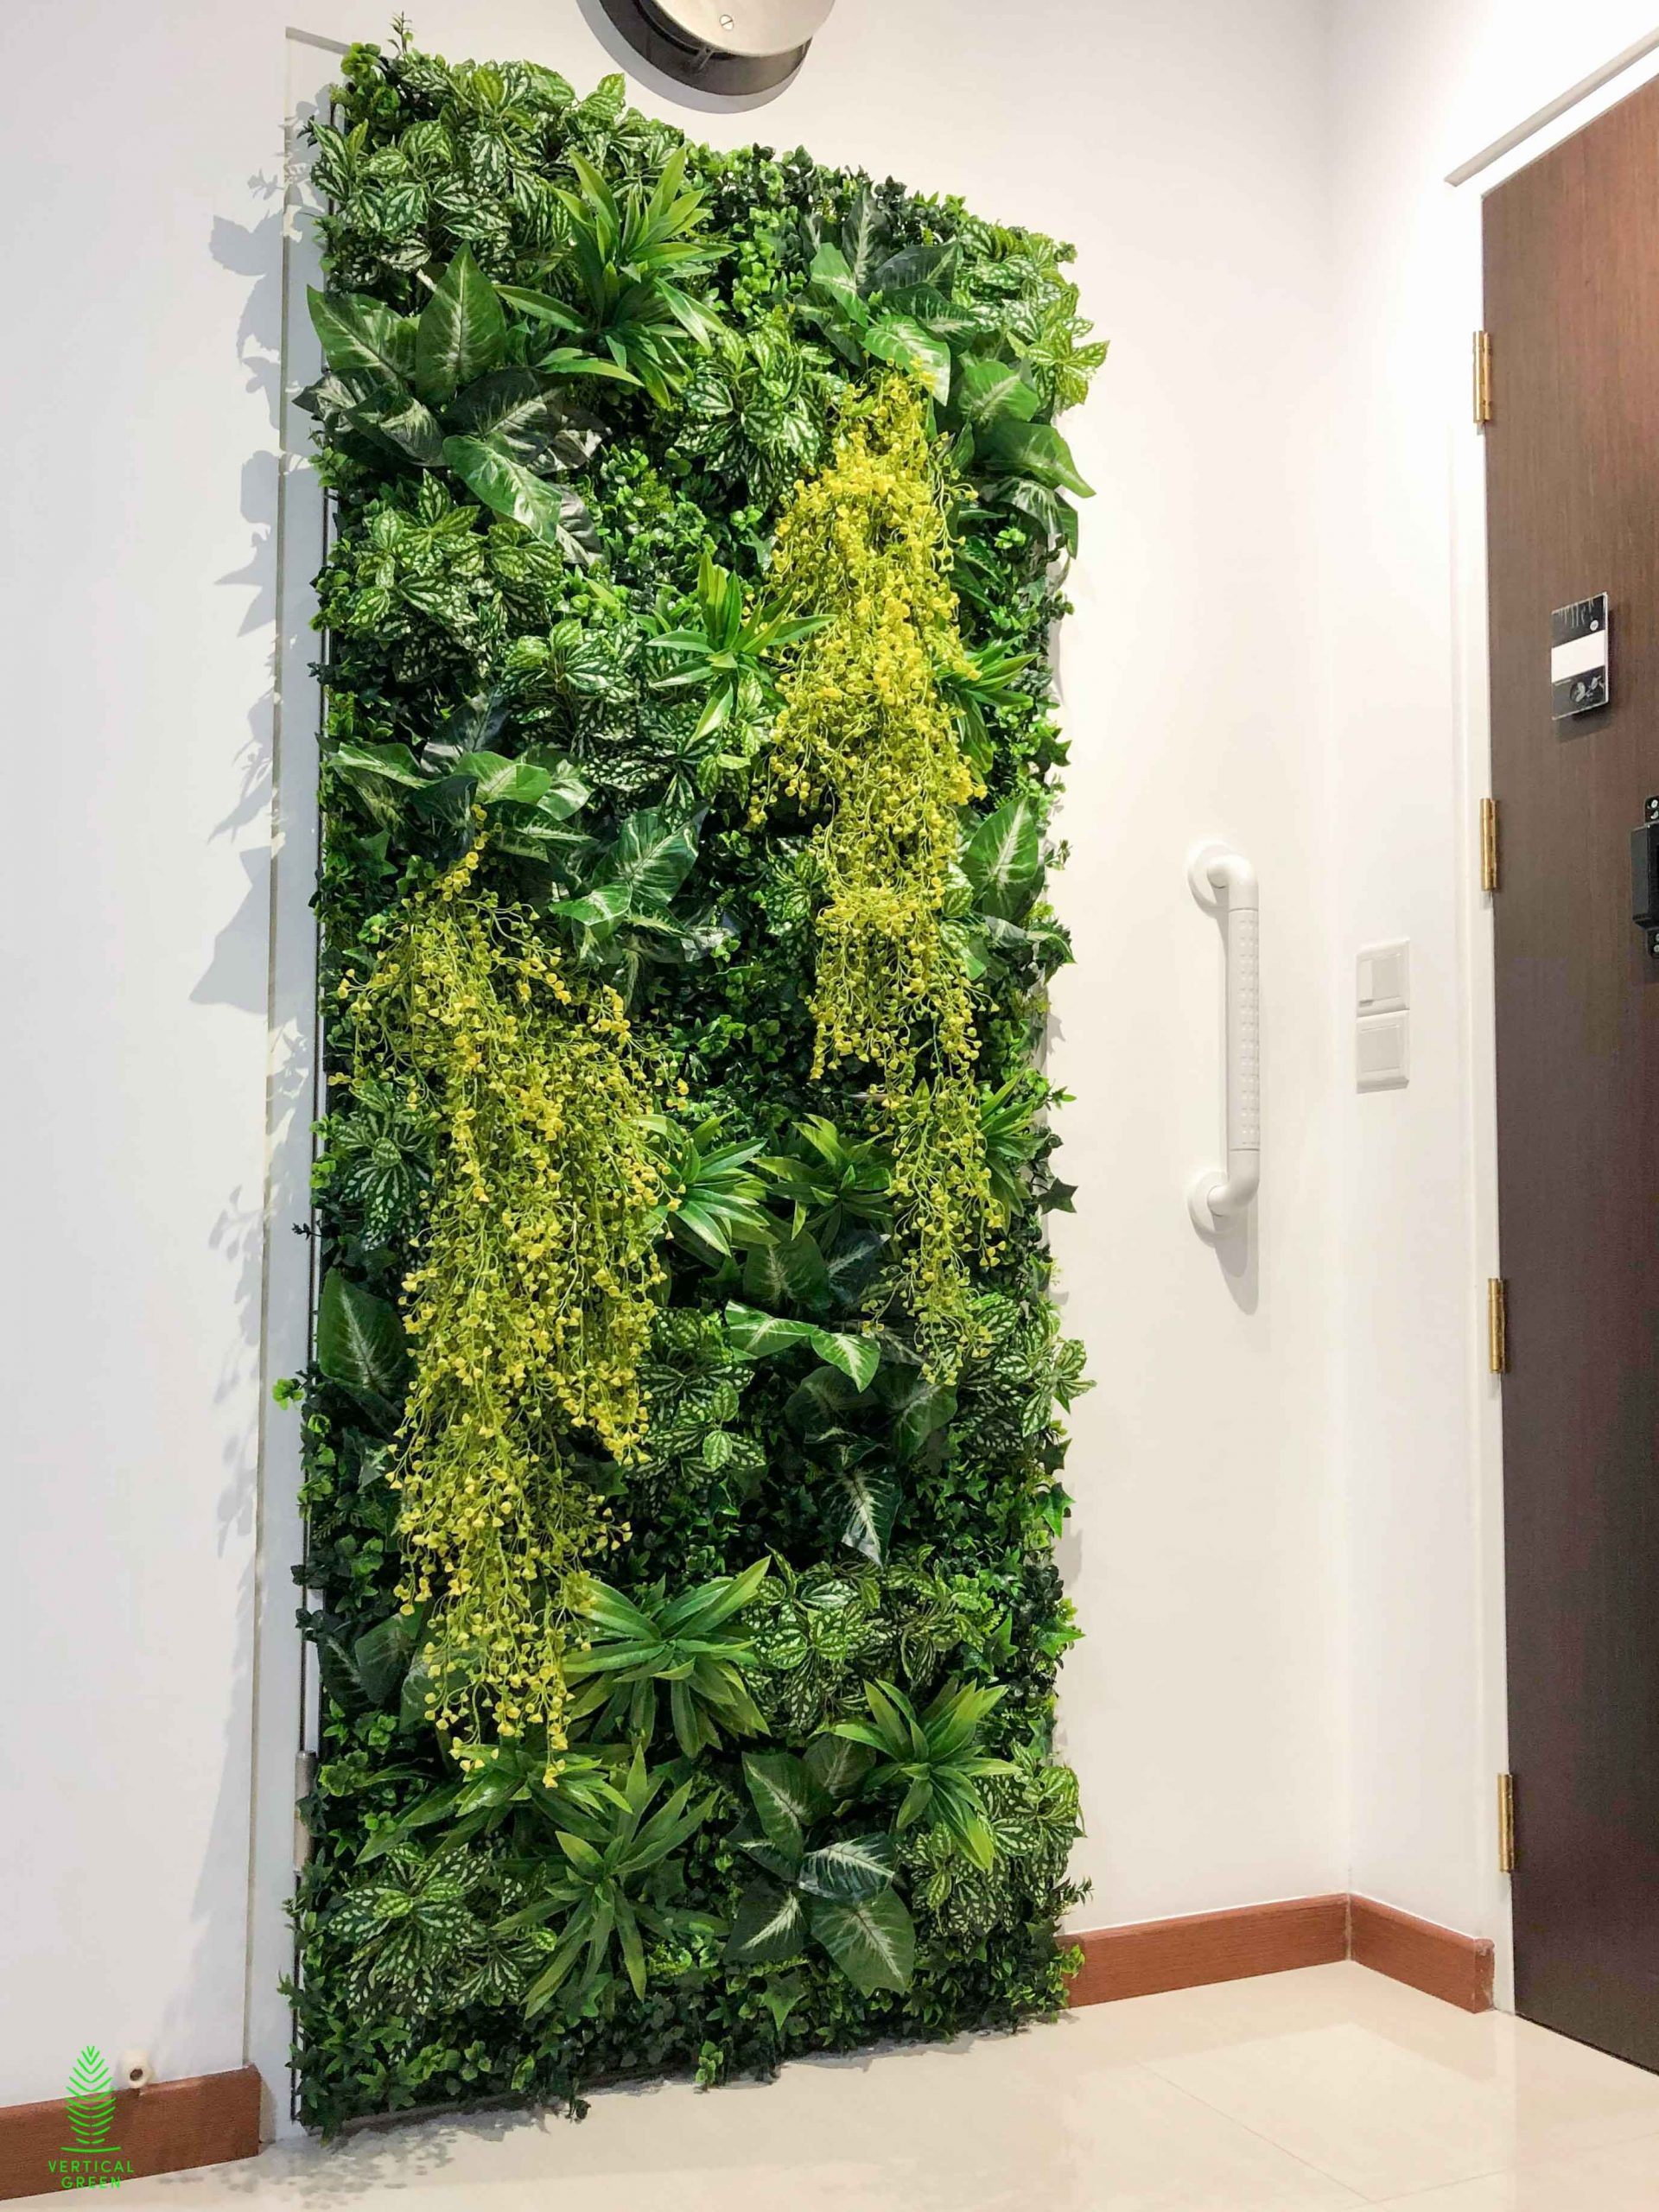 Singapore HDB bomb shelter green wall decoration